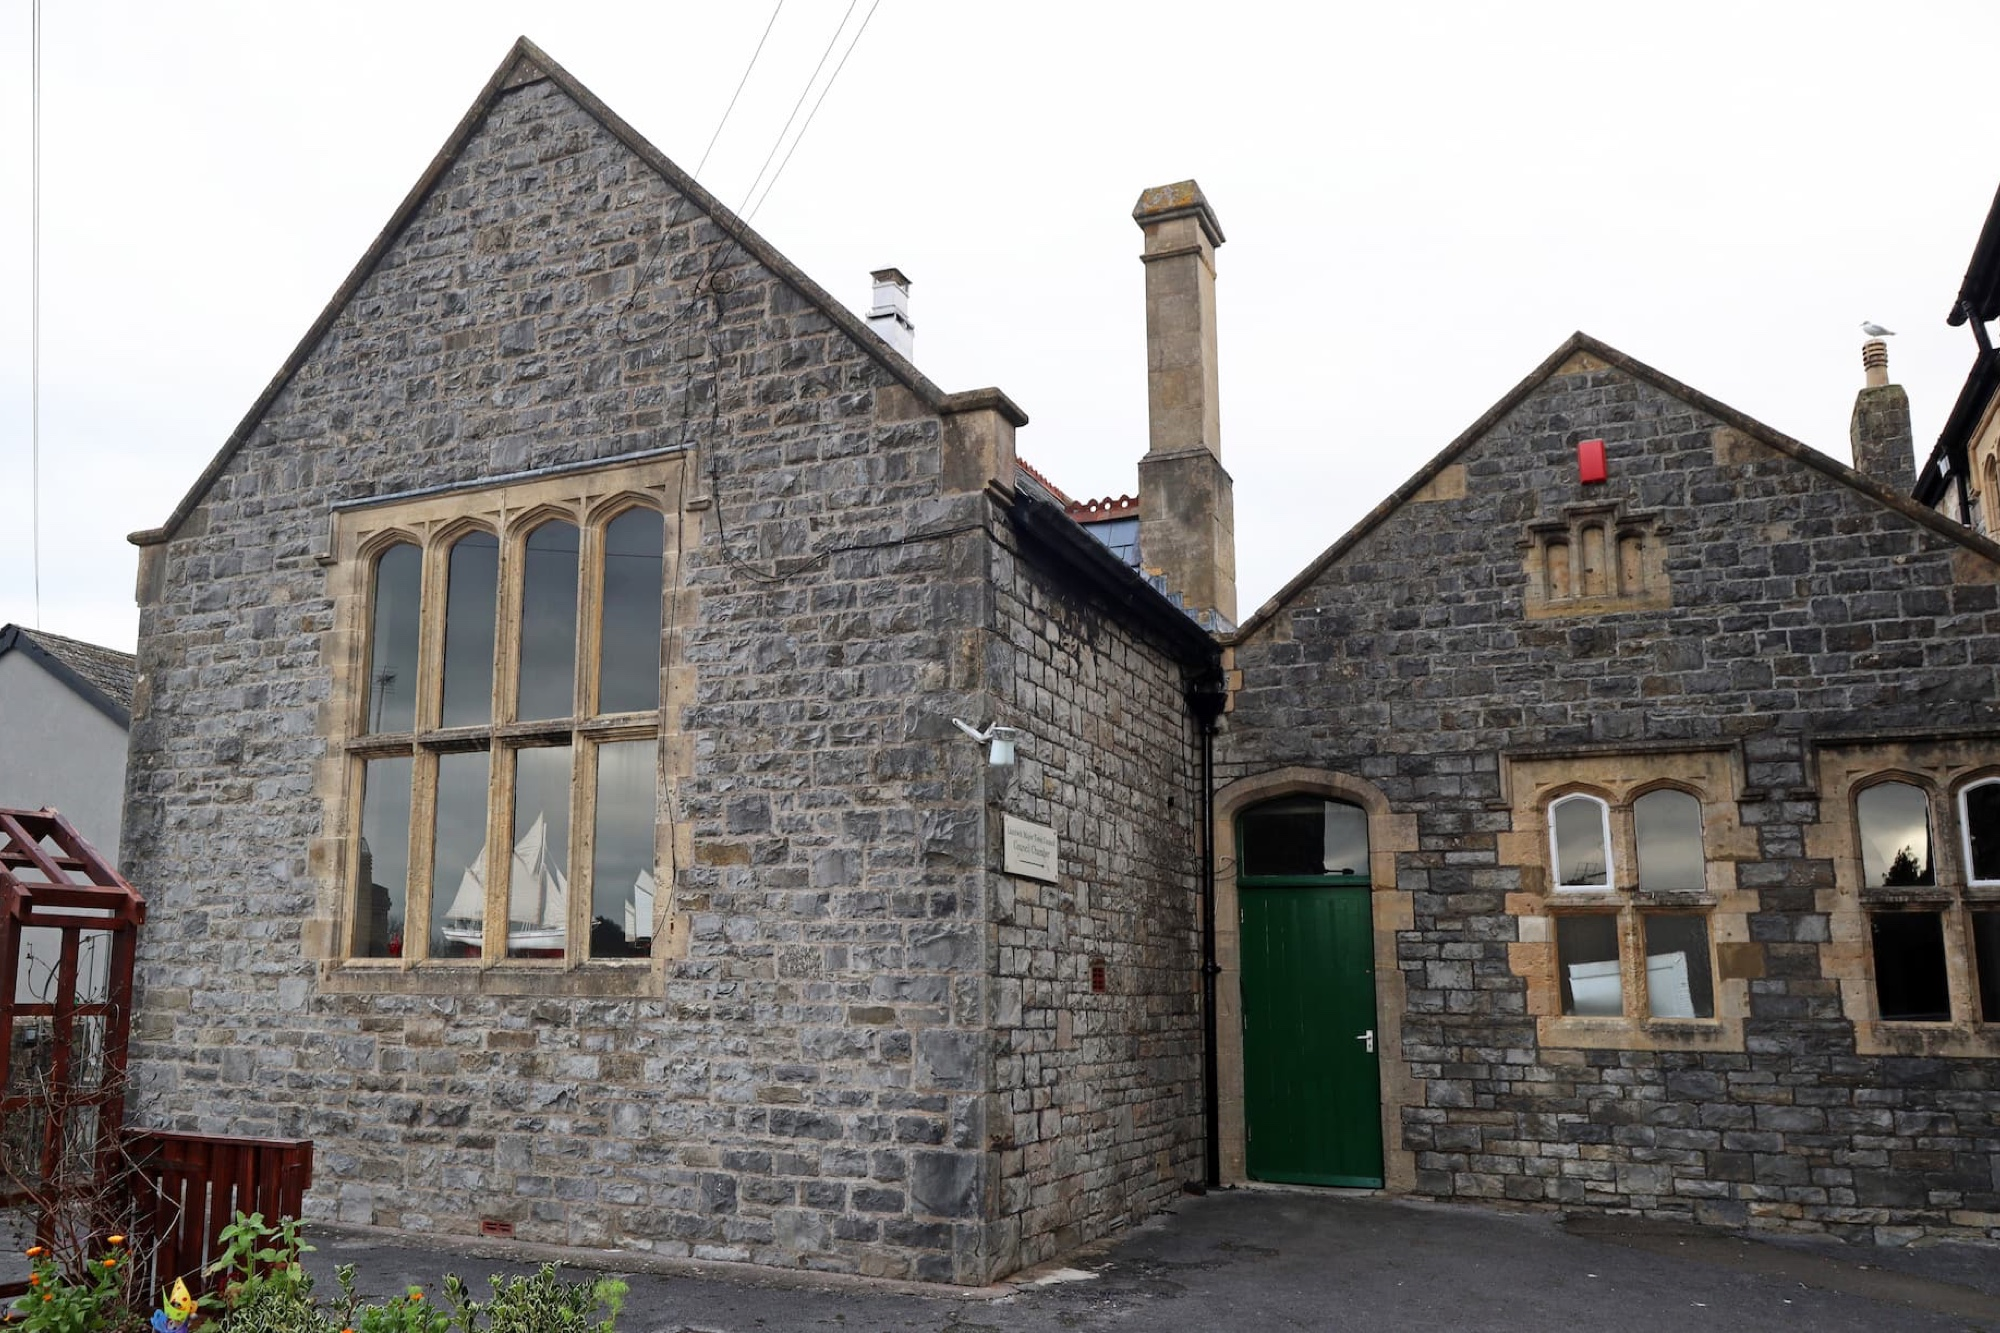 The back entrance of the Old School.